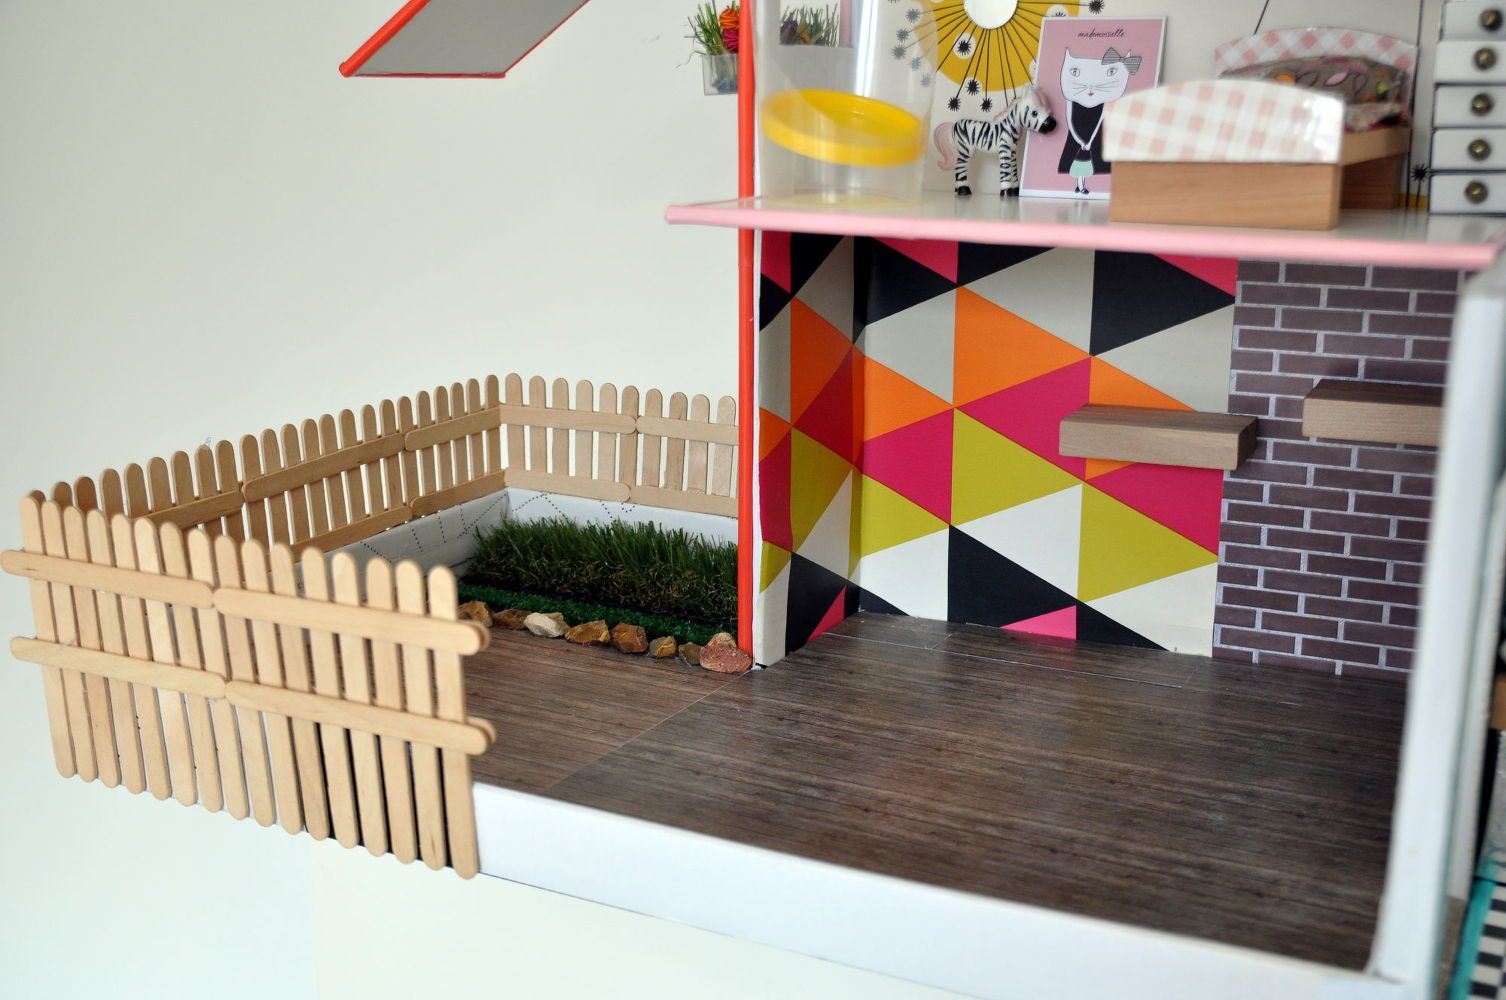 Shoe Box Dollhouse Craft For Kids: Re-Purposing & UpCycling